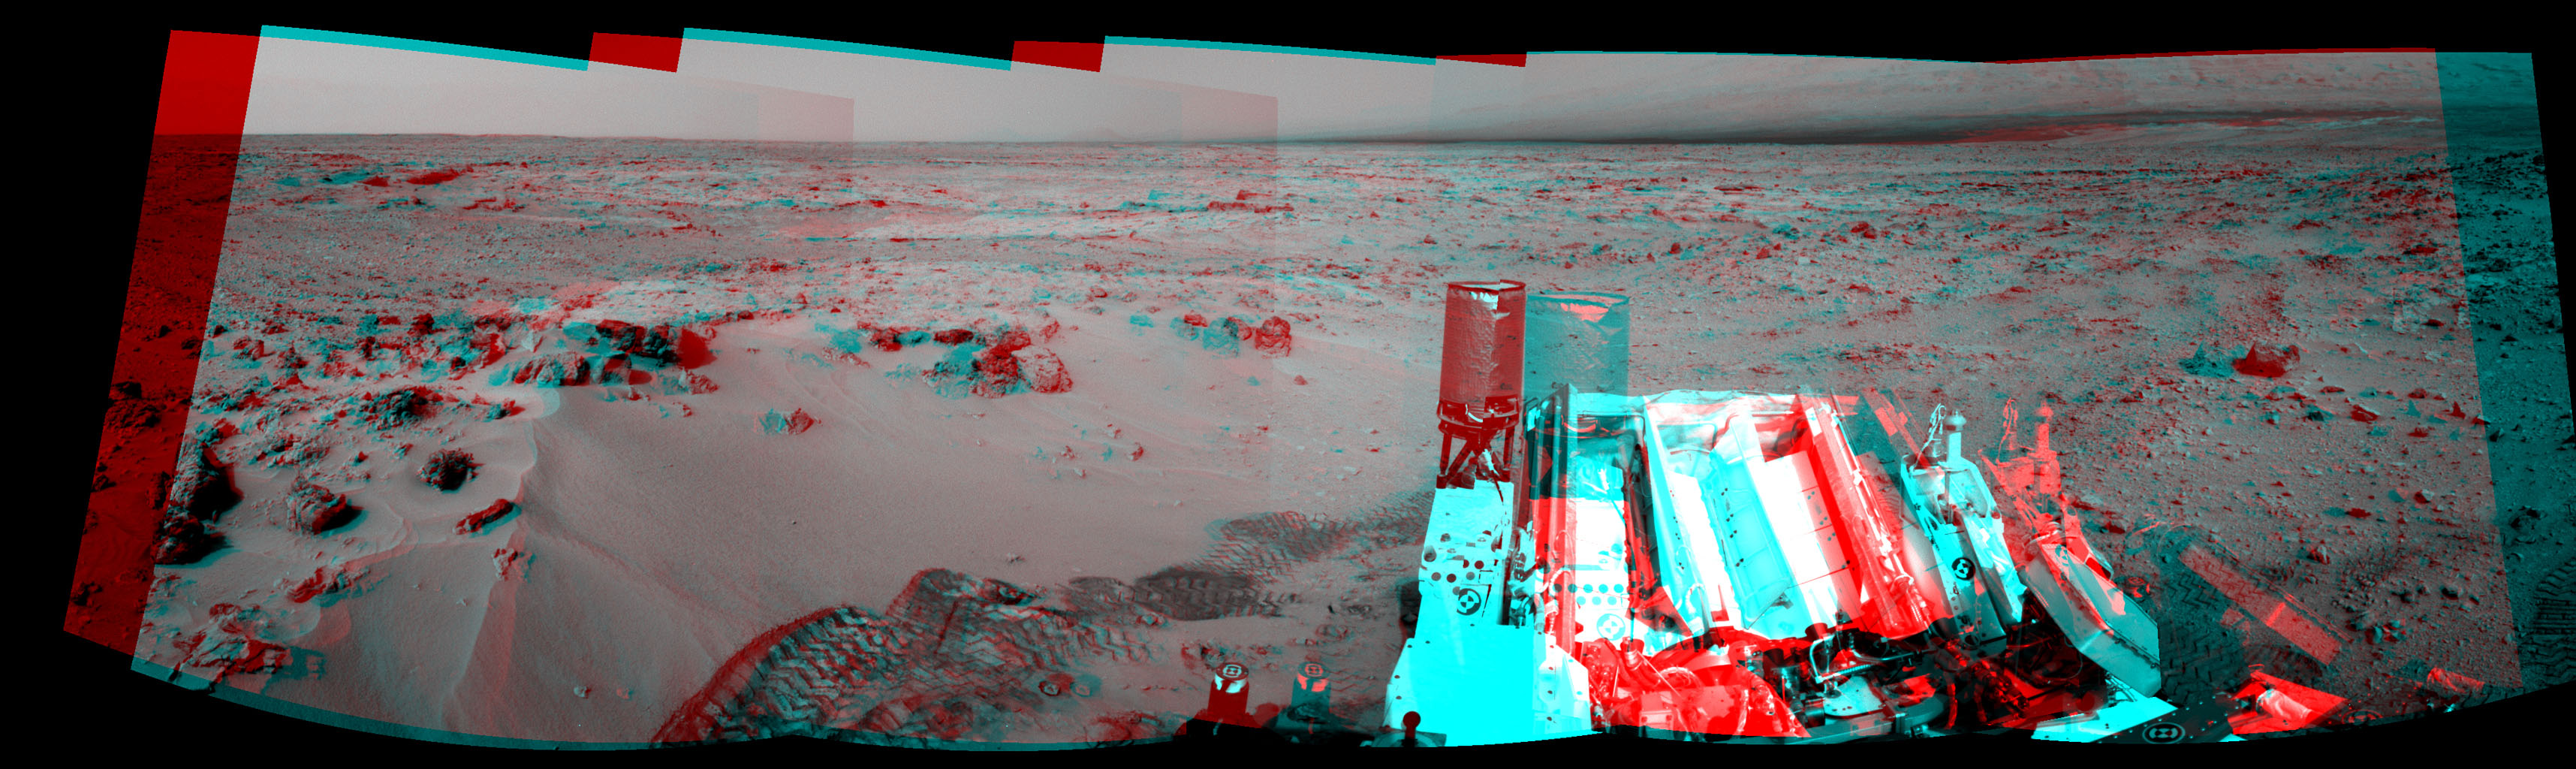 NASA's Mars rover Curiosity drove 6.2 feet (1.9 meters) during the 100th Martian day, or sol, of the mission (Nov. 16, 2012). The rover used its Navigation Camera after the drive to record the images combined into this 3-D panoramic view.